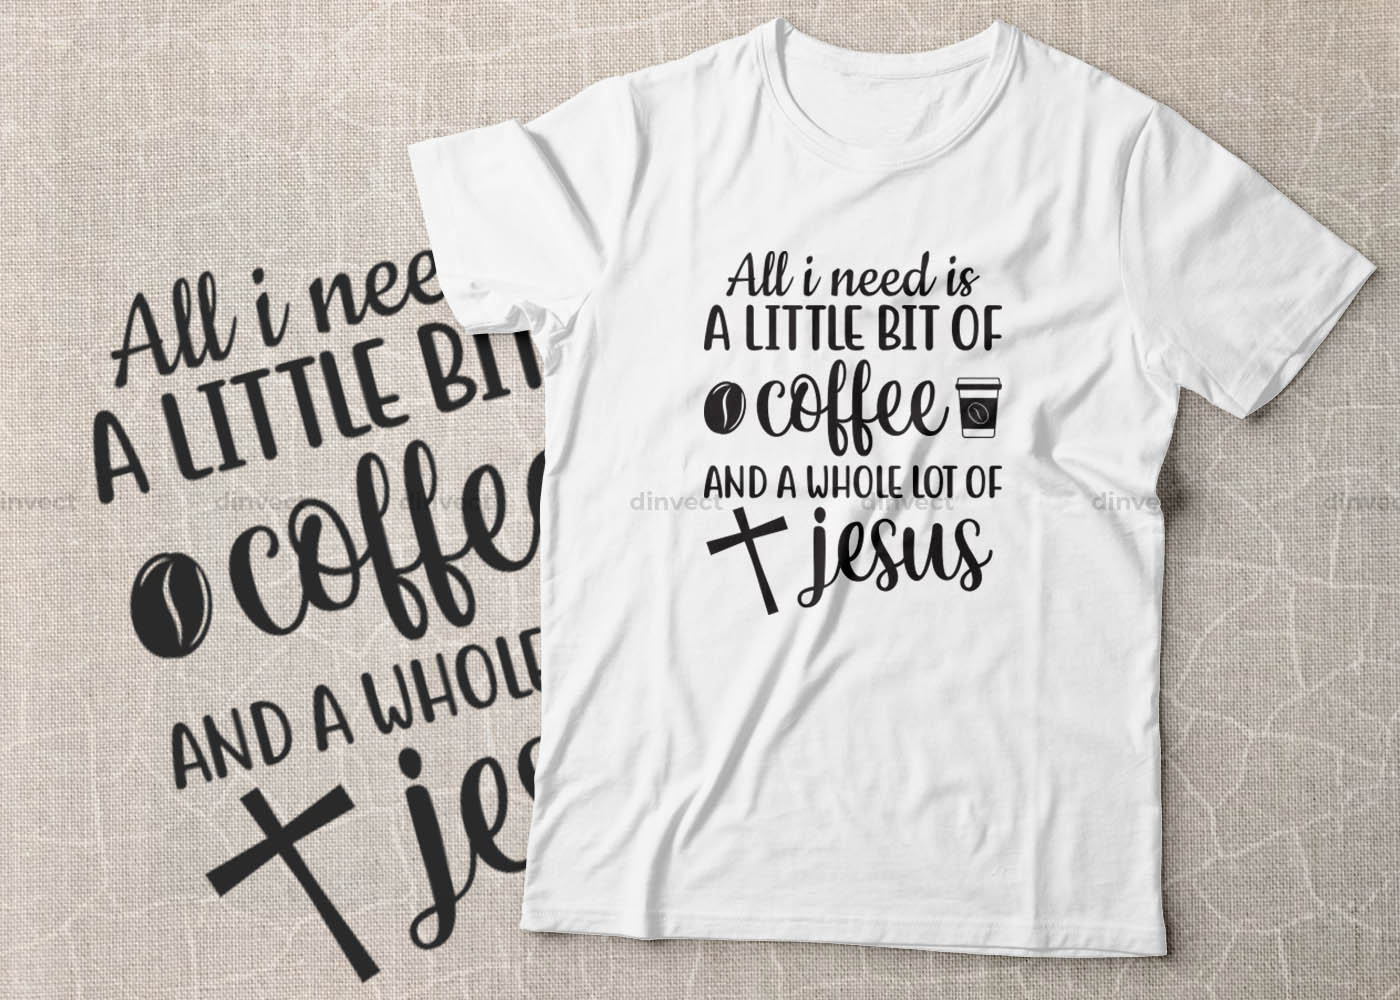 Coffee SVG, Coffee Bundle Svg, Coffee Mug Svg, Funny Coffee Quotes SVG, Mug Design Svg - All i need is a little bit of coffee and a whole lot of jesus -